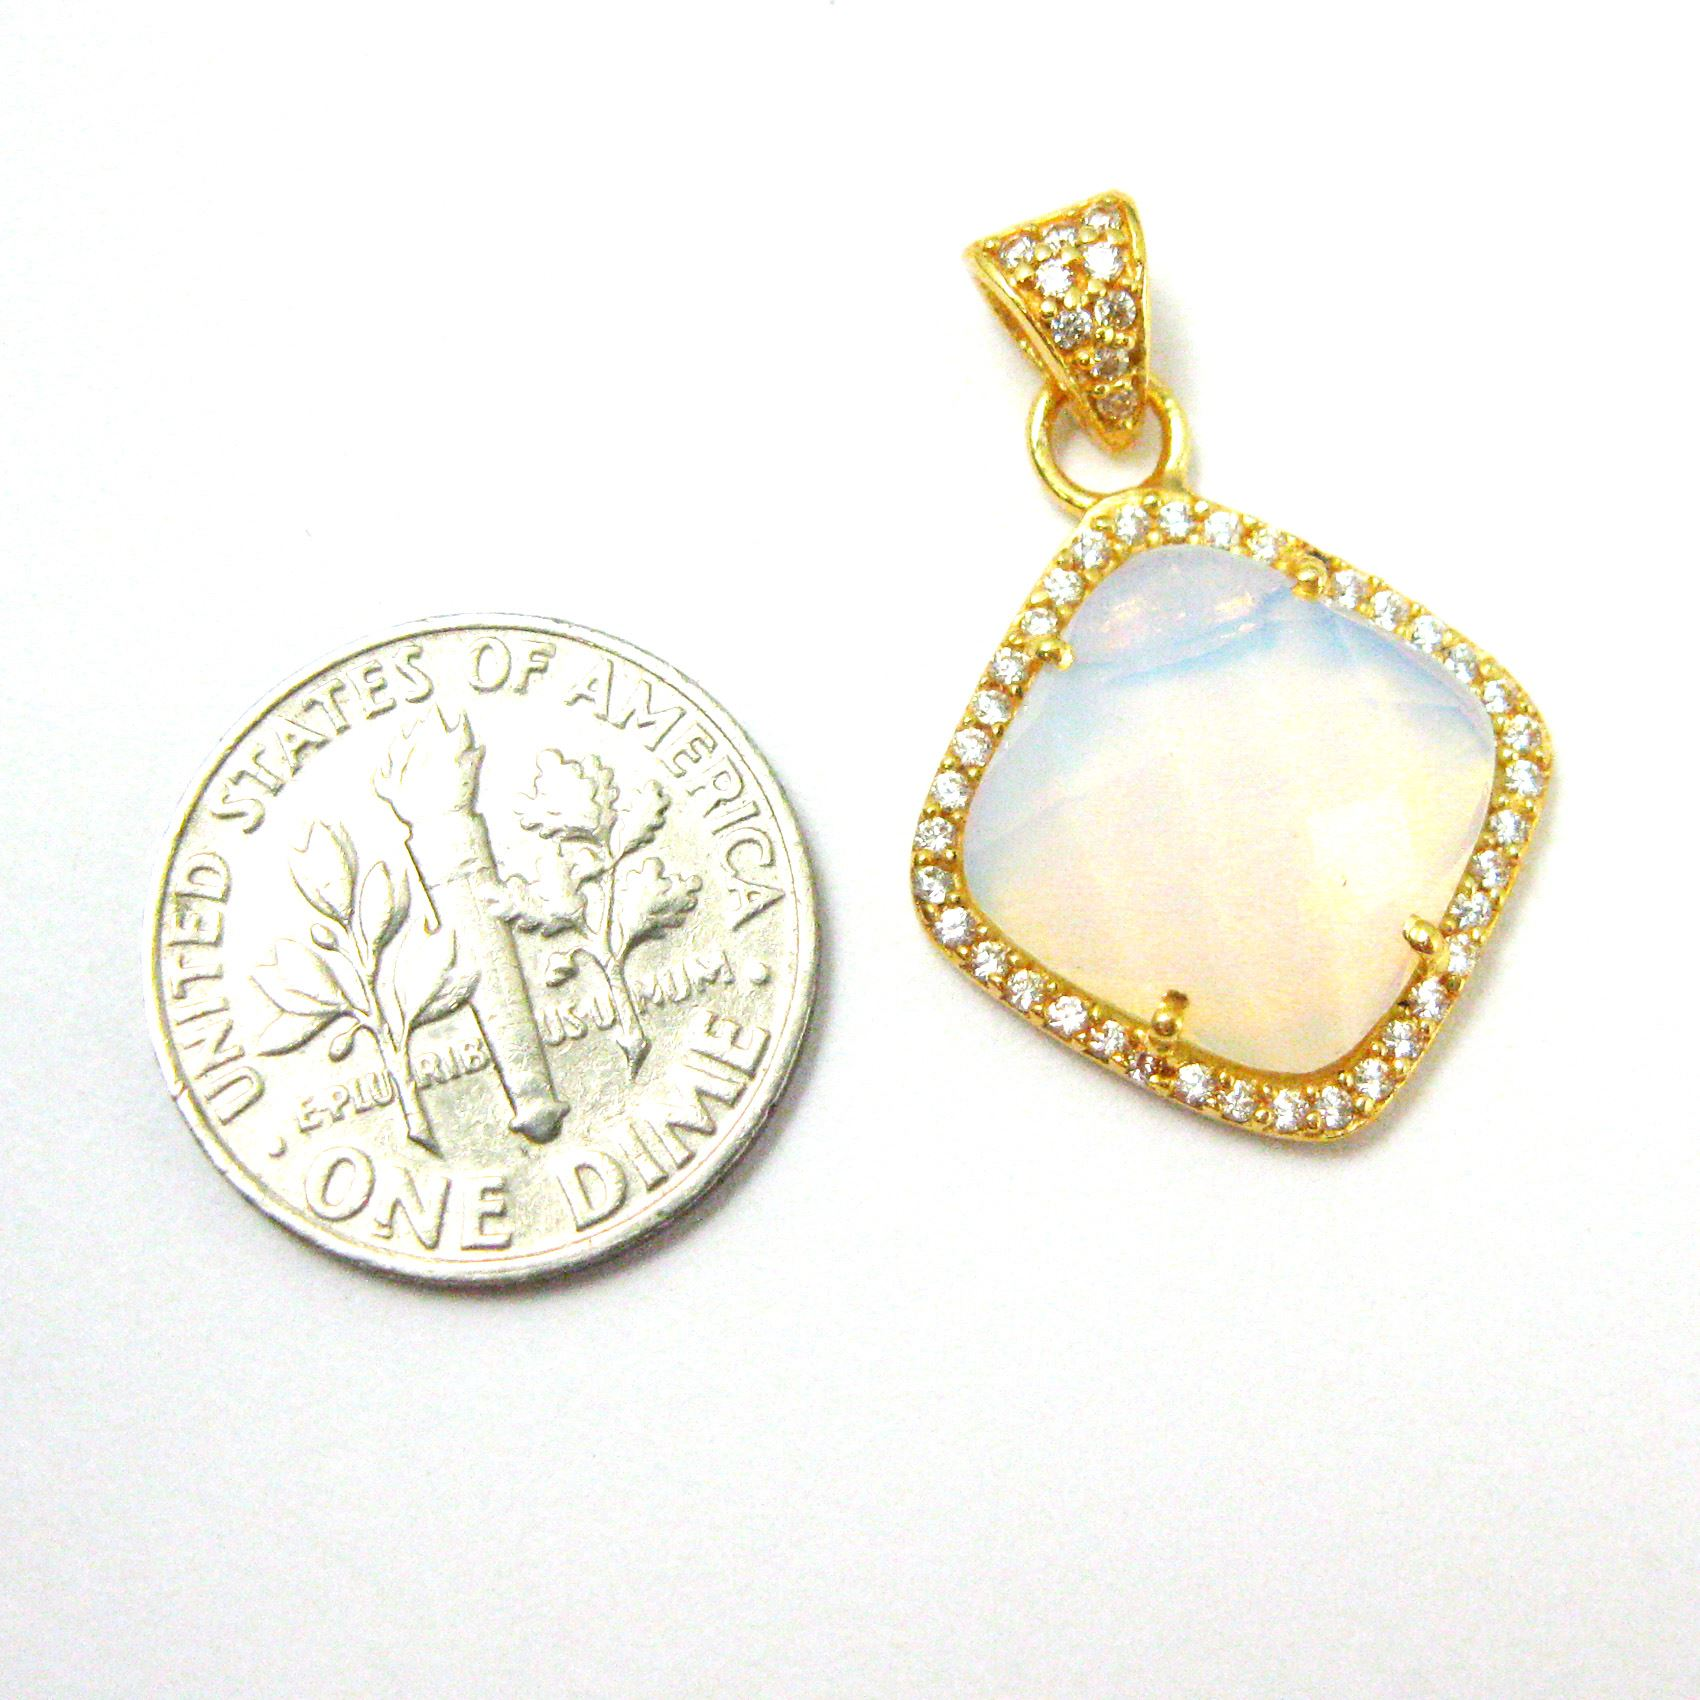 Gold plated Sterling Silver Pave Bezel Gemstone Pendant - Cubic Zirconia Pave Setting -  Diamond Shape Faceted Stone- Opalite Quartz- 17mm